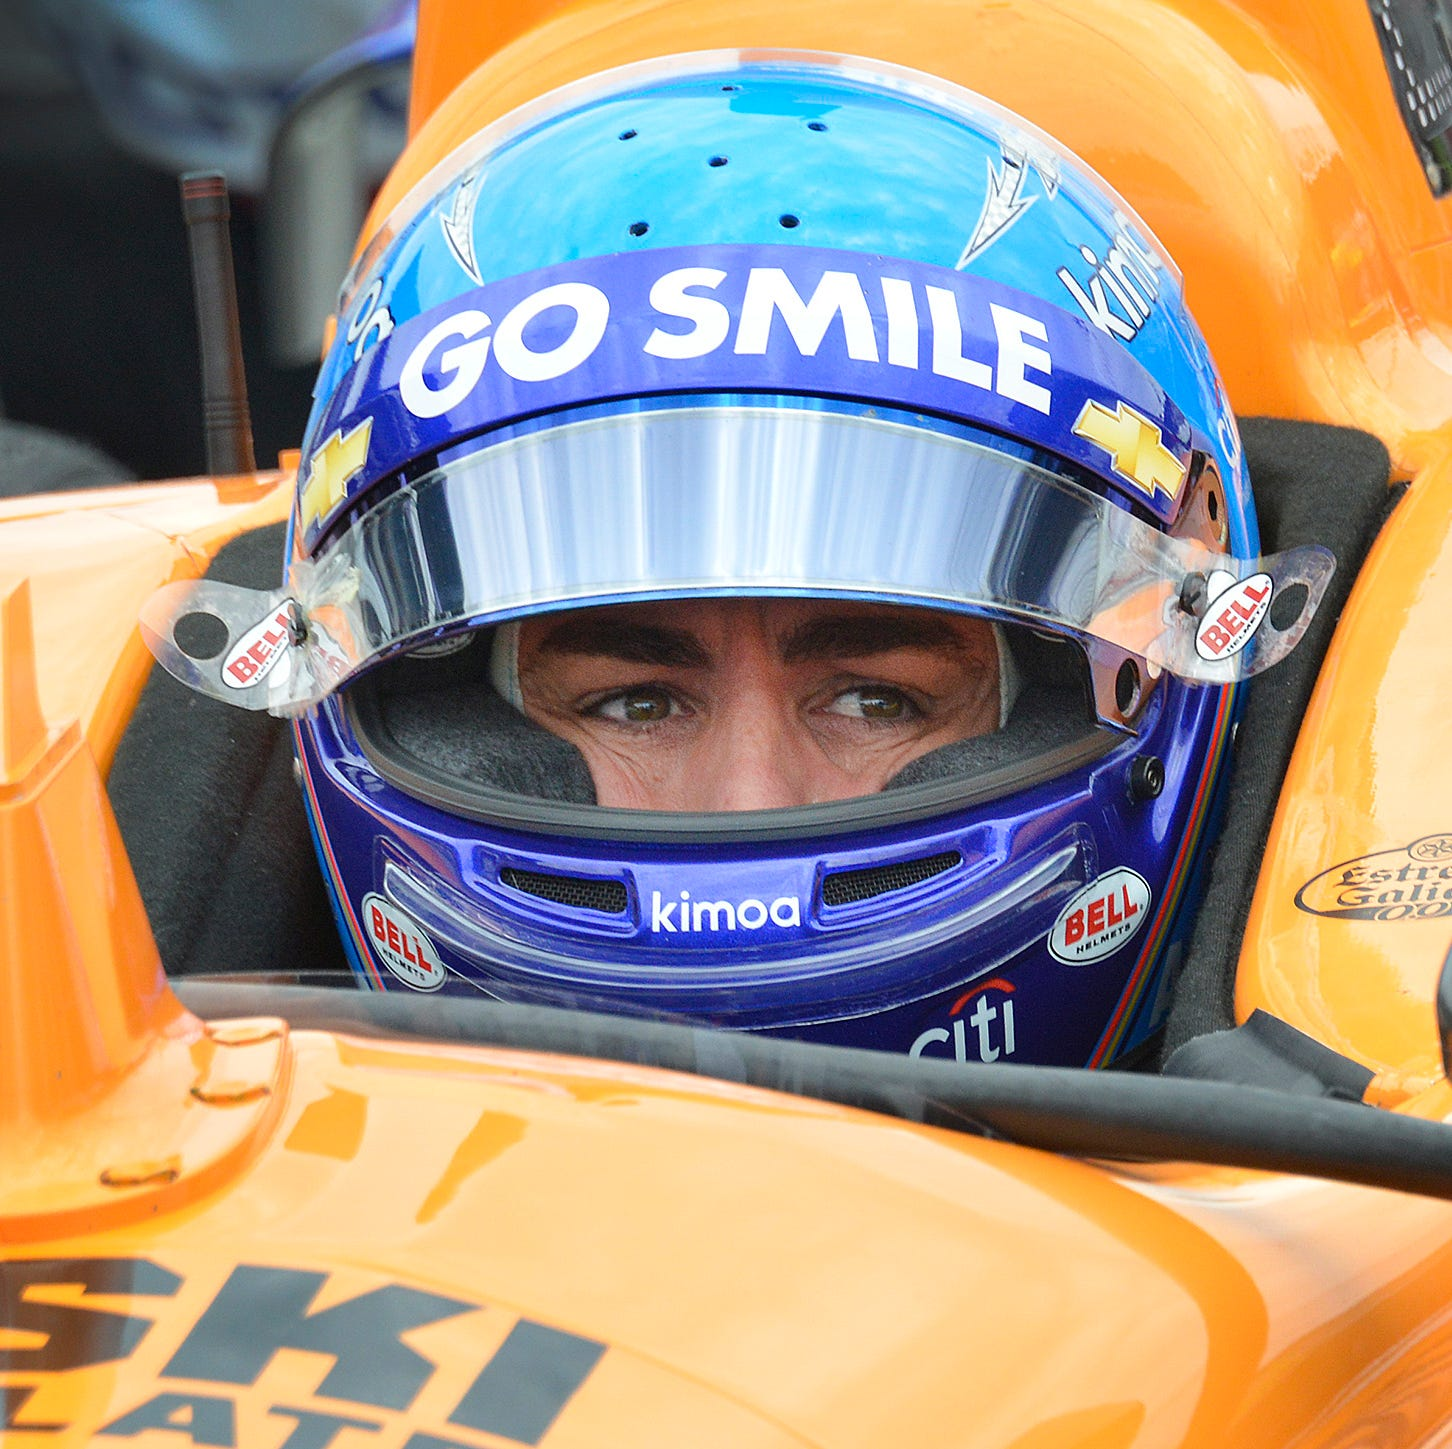 Fernando Alonso worried about qualifying for Indy 500